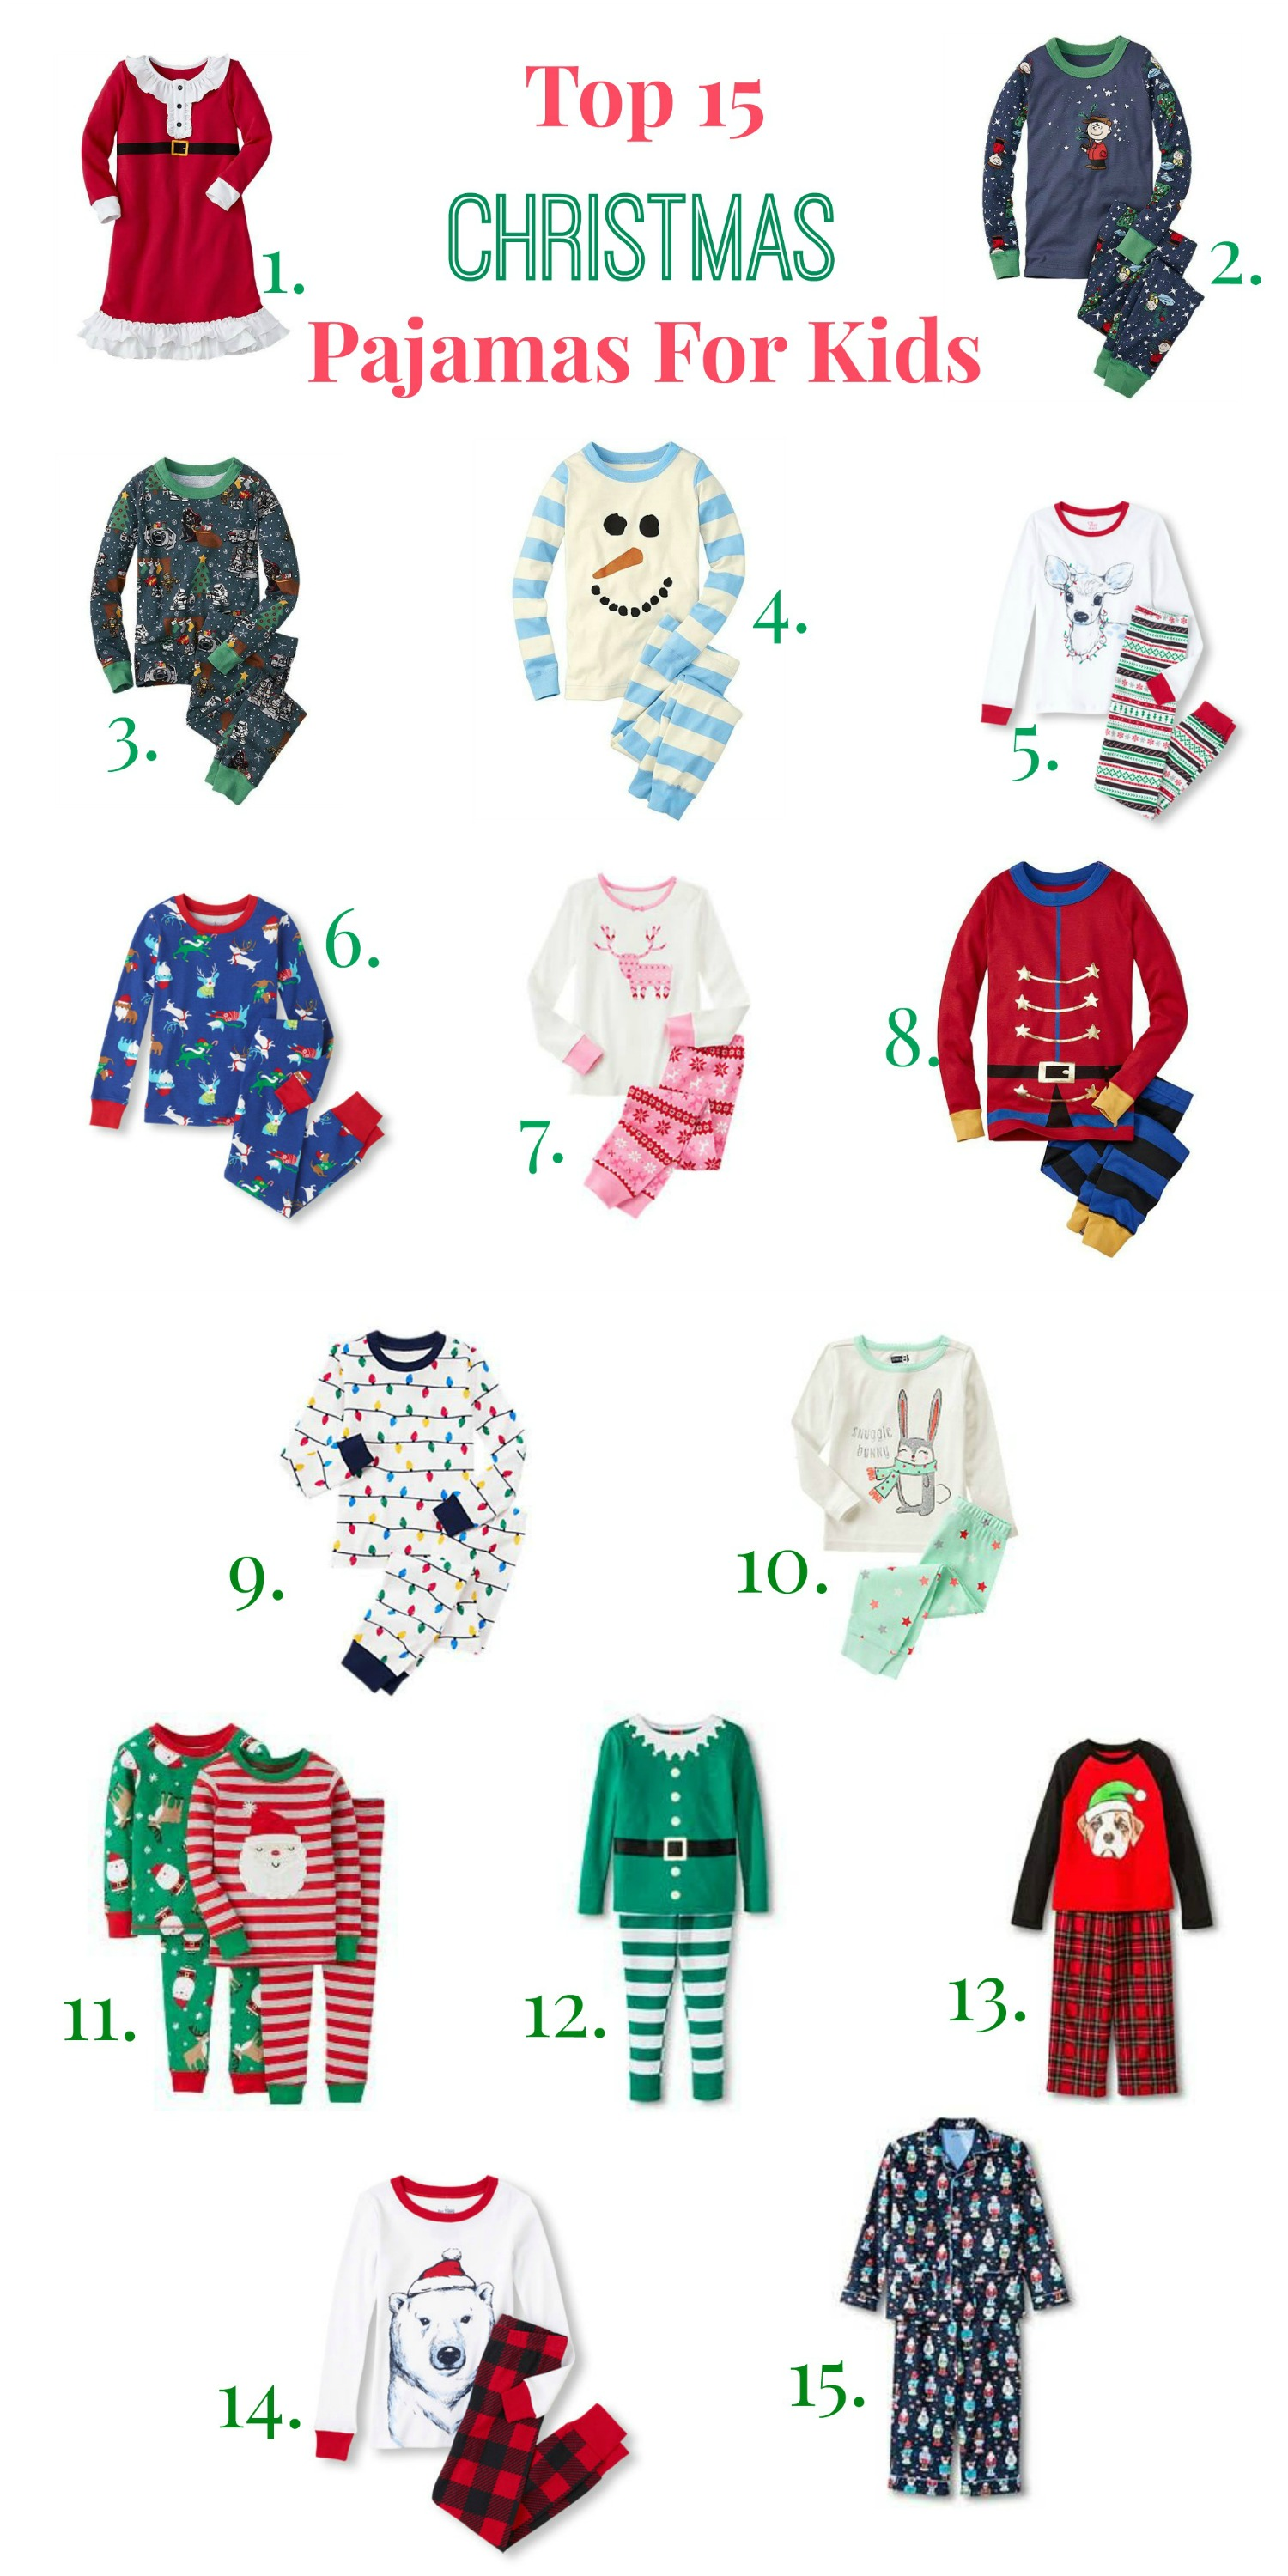 Top 15 Christmas Pajamas for Kids This Year